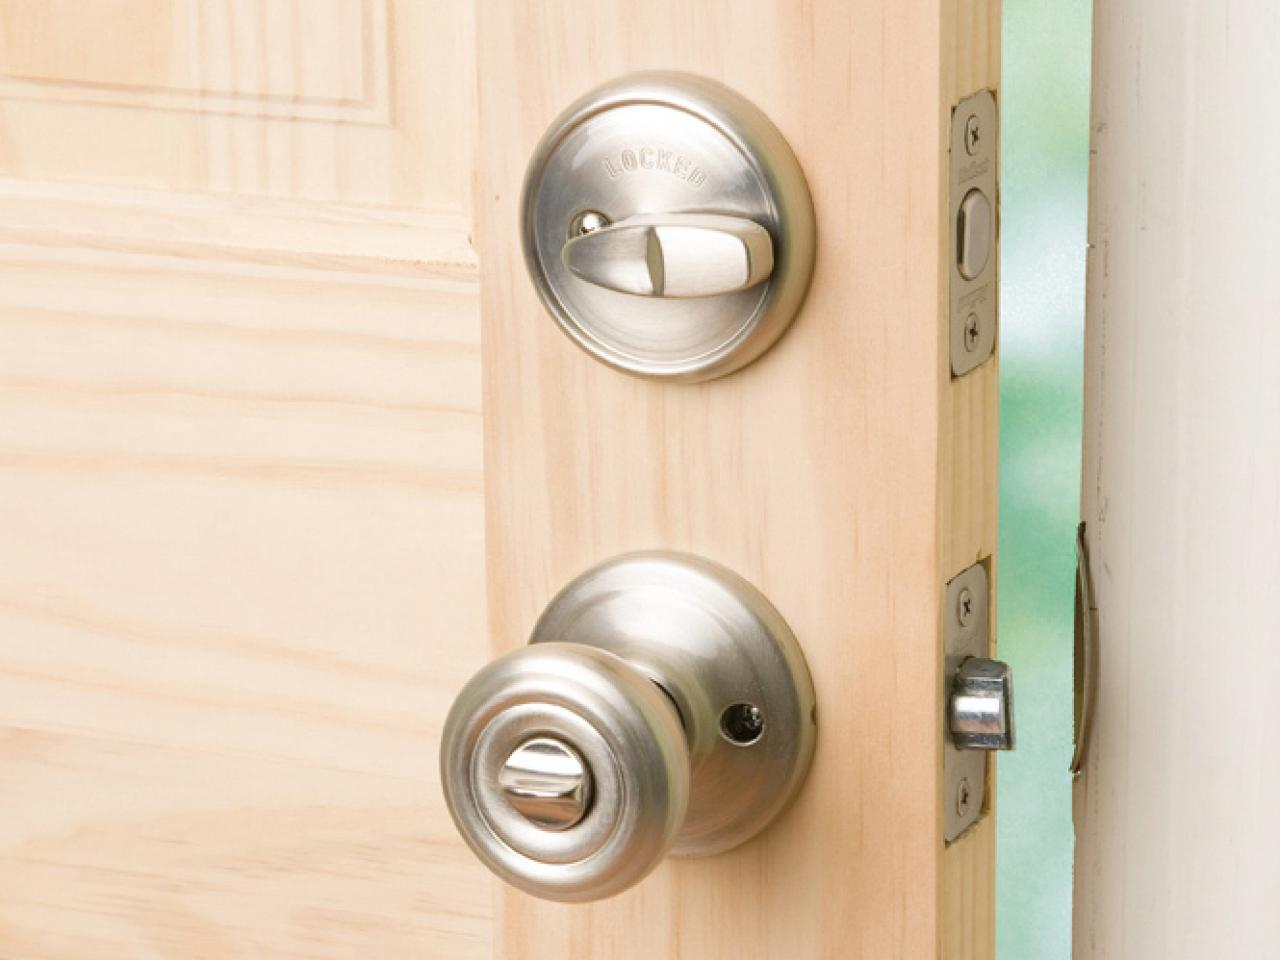 Exceptionnel Locks Installed On Door